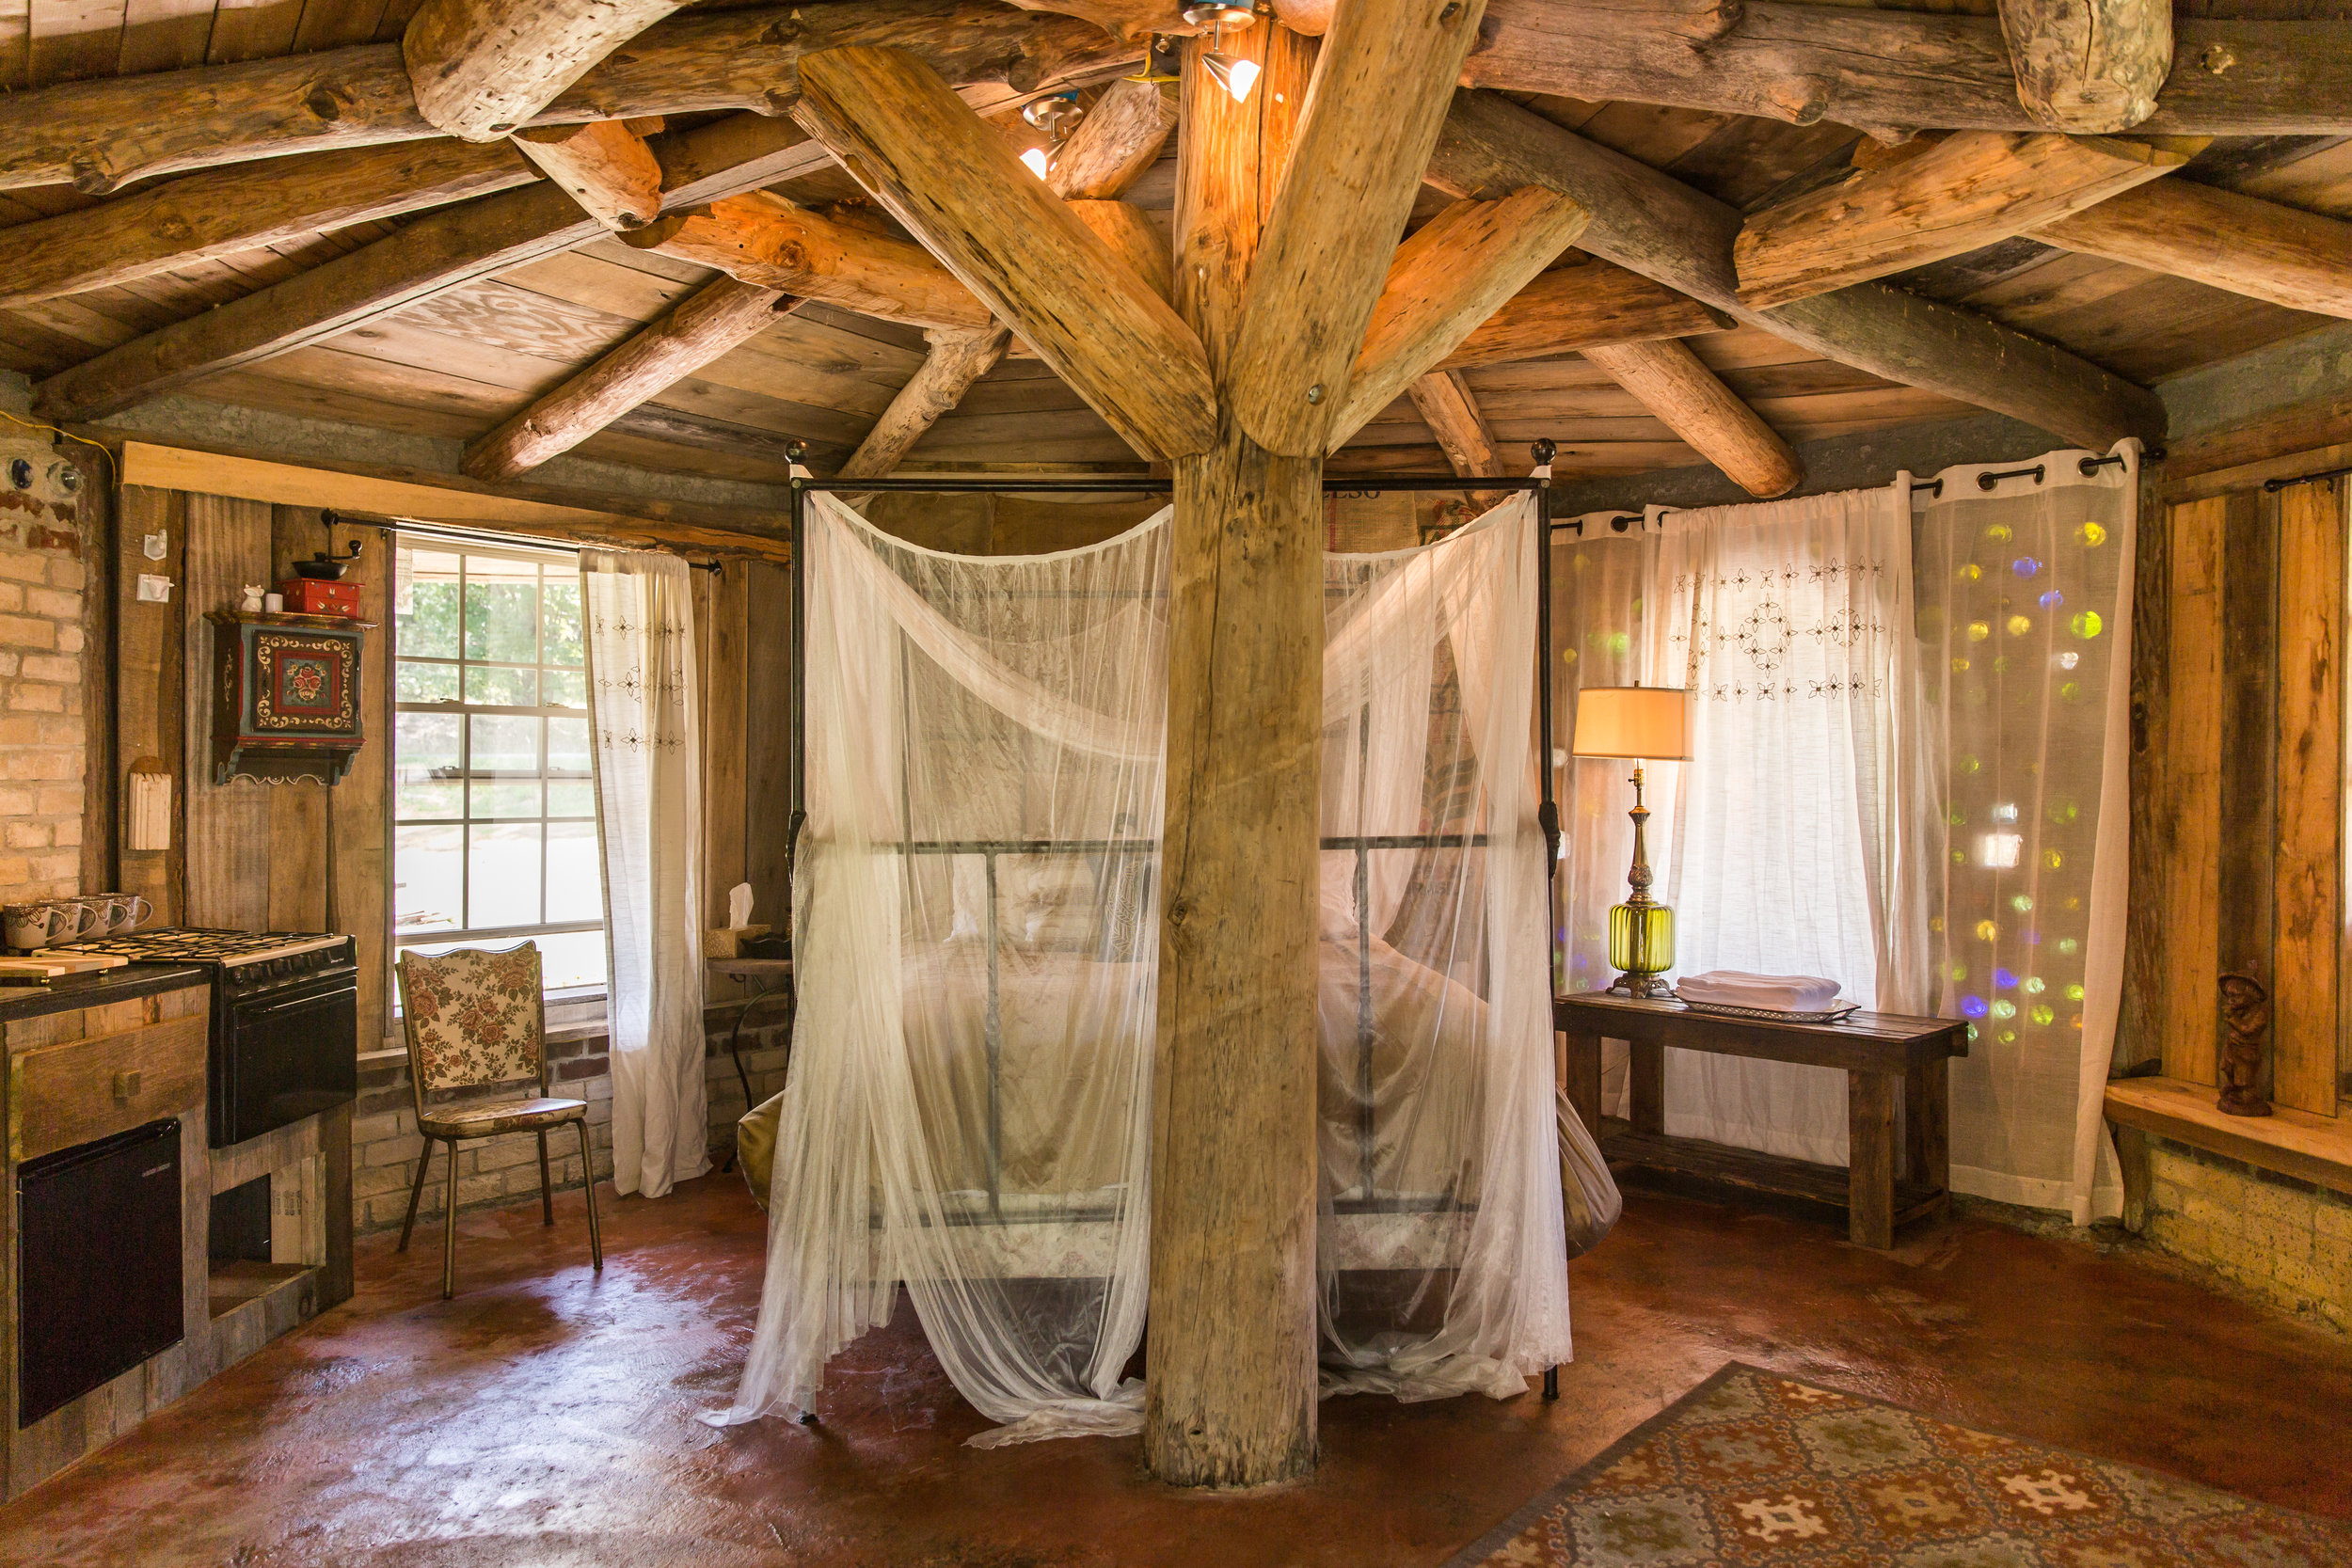 Book the Hobbit House in the Hallow on Airbnb